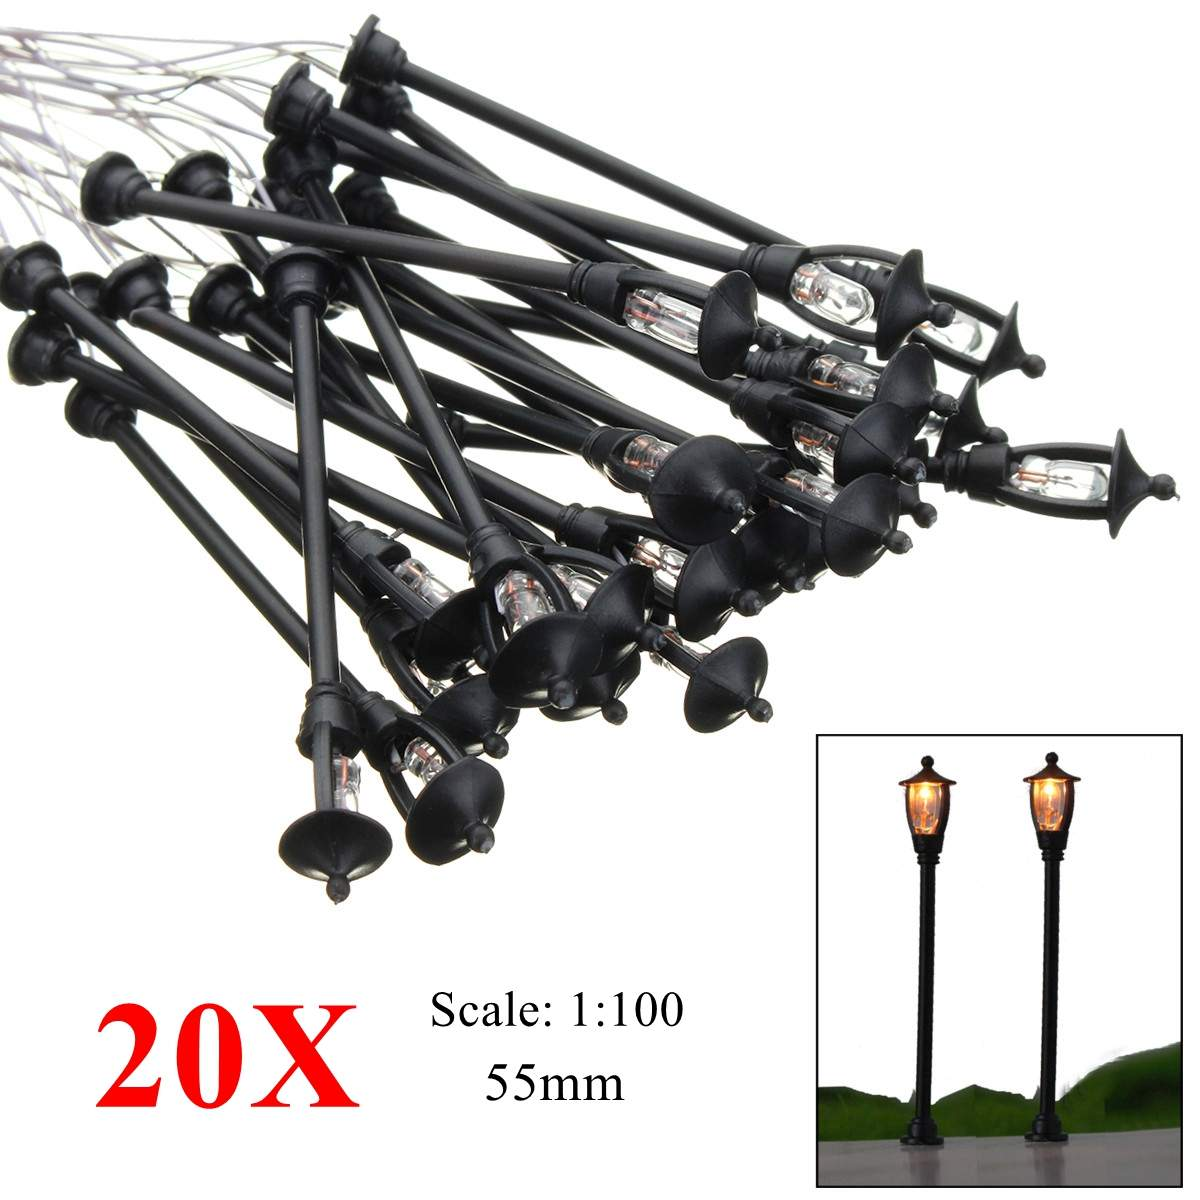 20pcs Model Garden Lamps HO Scale 1:100 Black Model Layout Single Head Garden Lights Lamppost Landscape Light Model